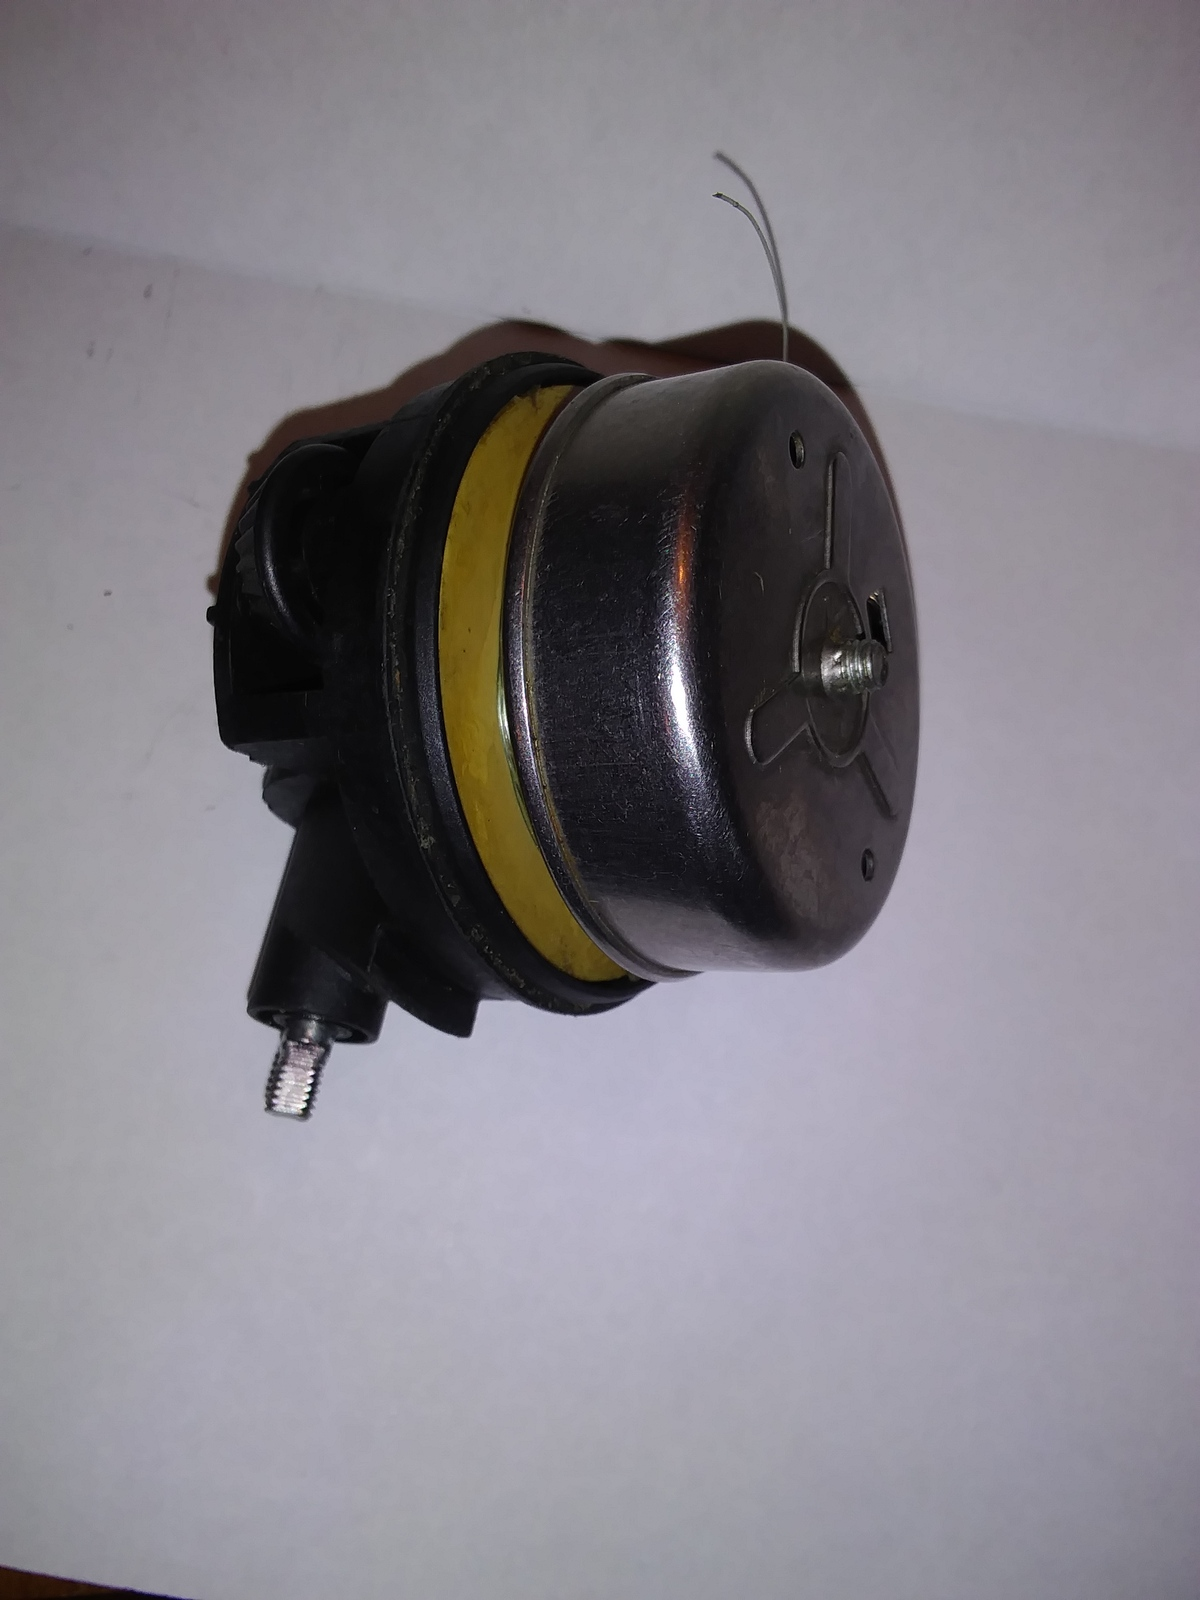 Shakespeare TGSC15 Spincasting Reel, Main and 21 similar items